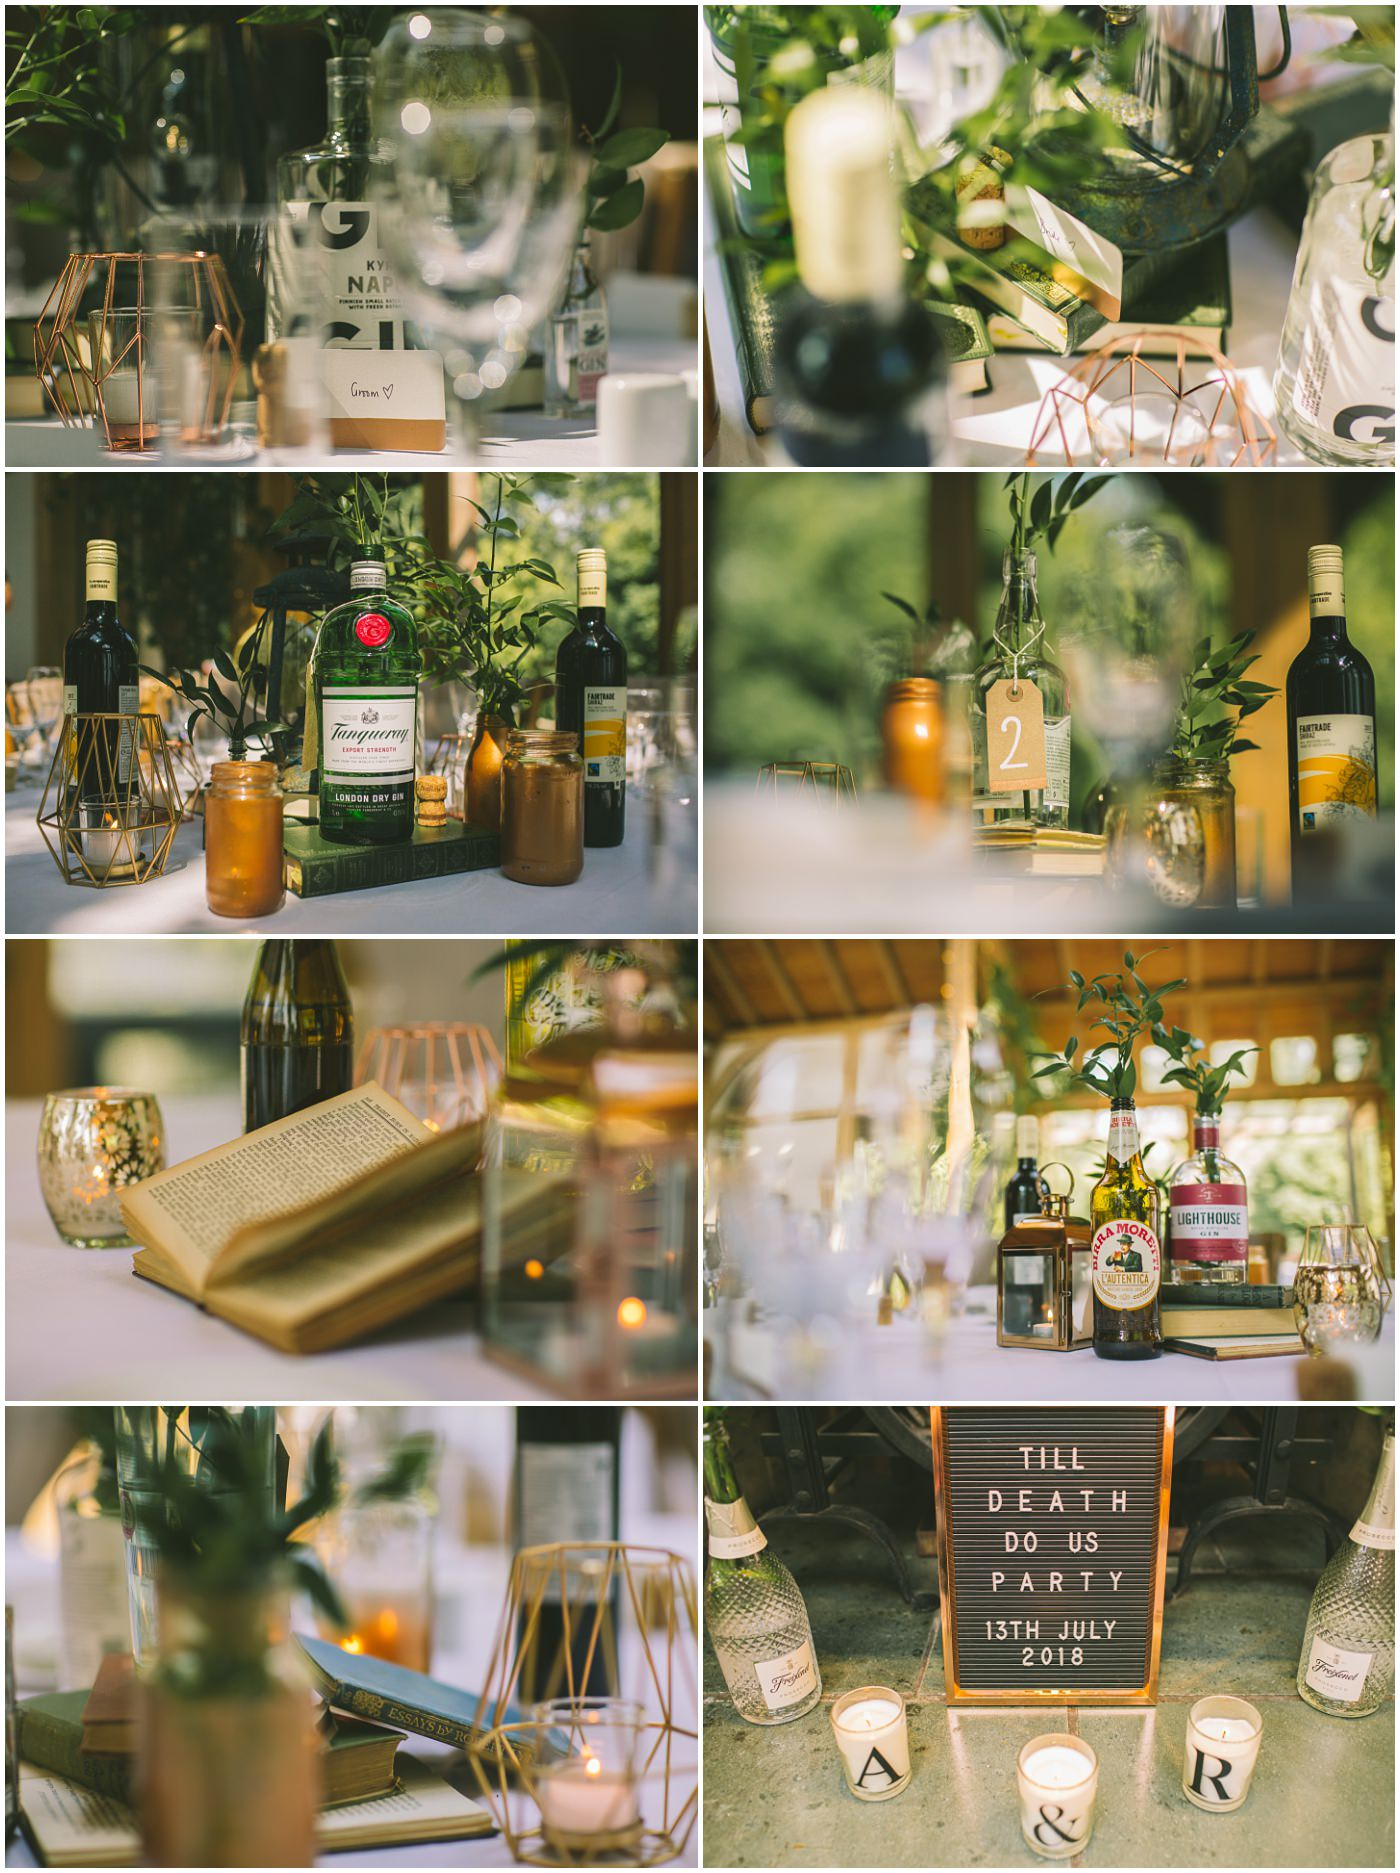 beautiful details and gin bottle centrepieces used in rustic DIY upcycled wedding